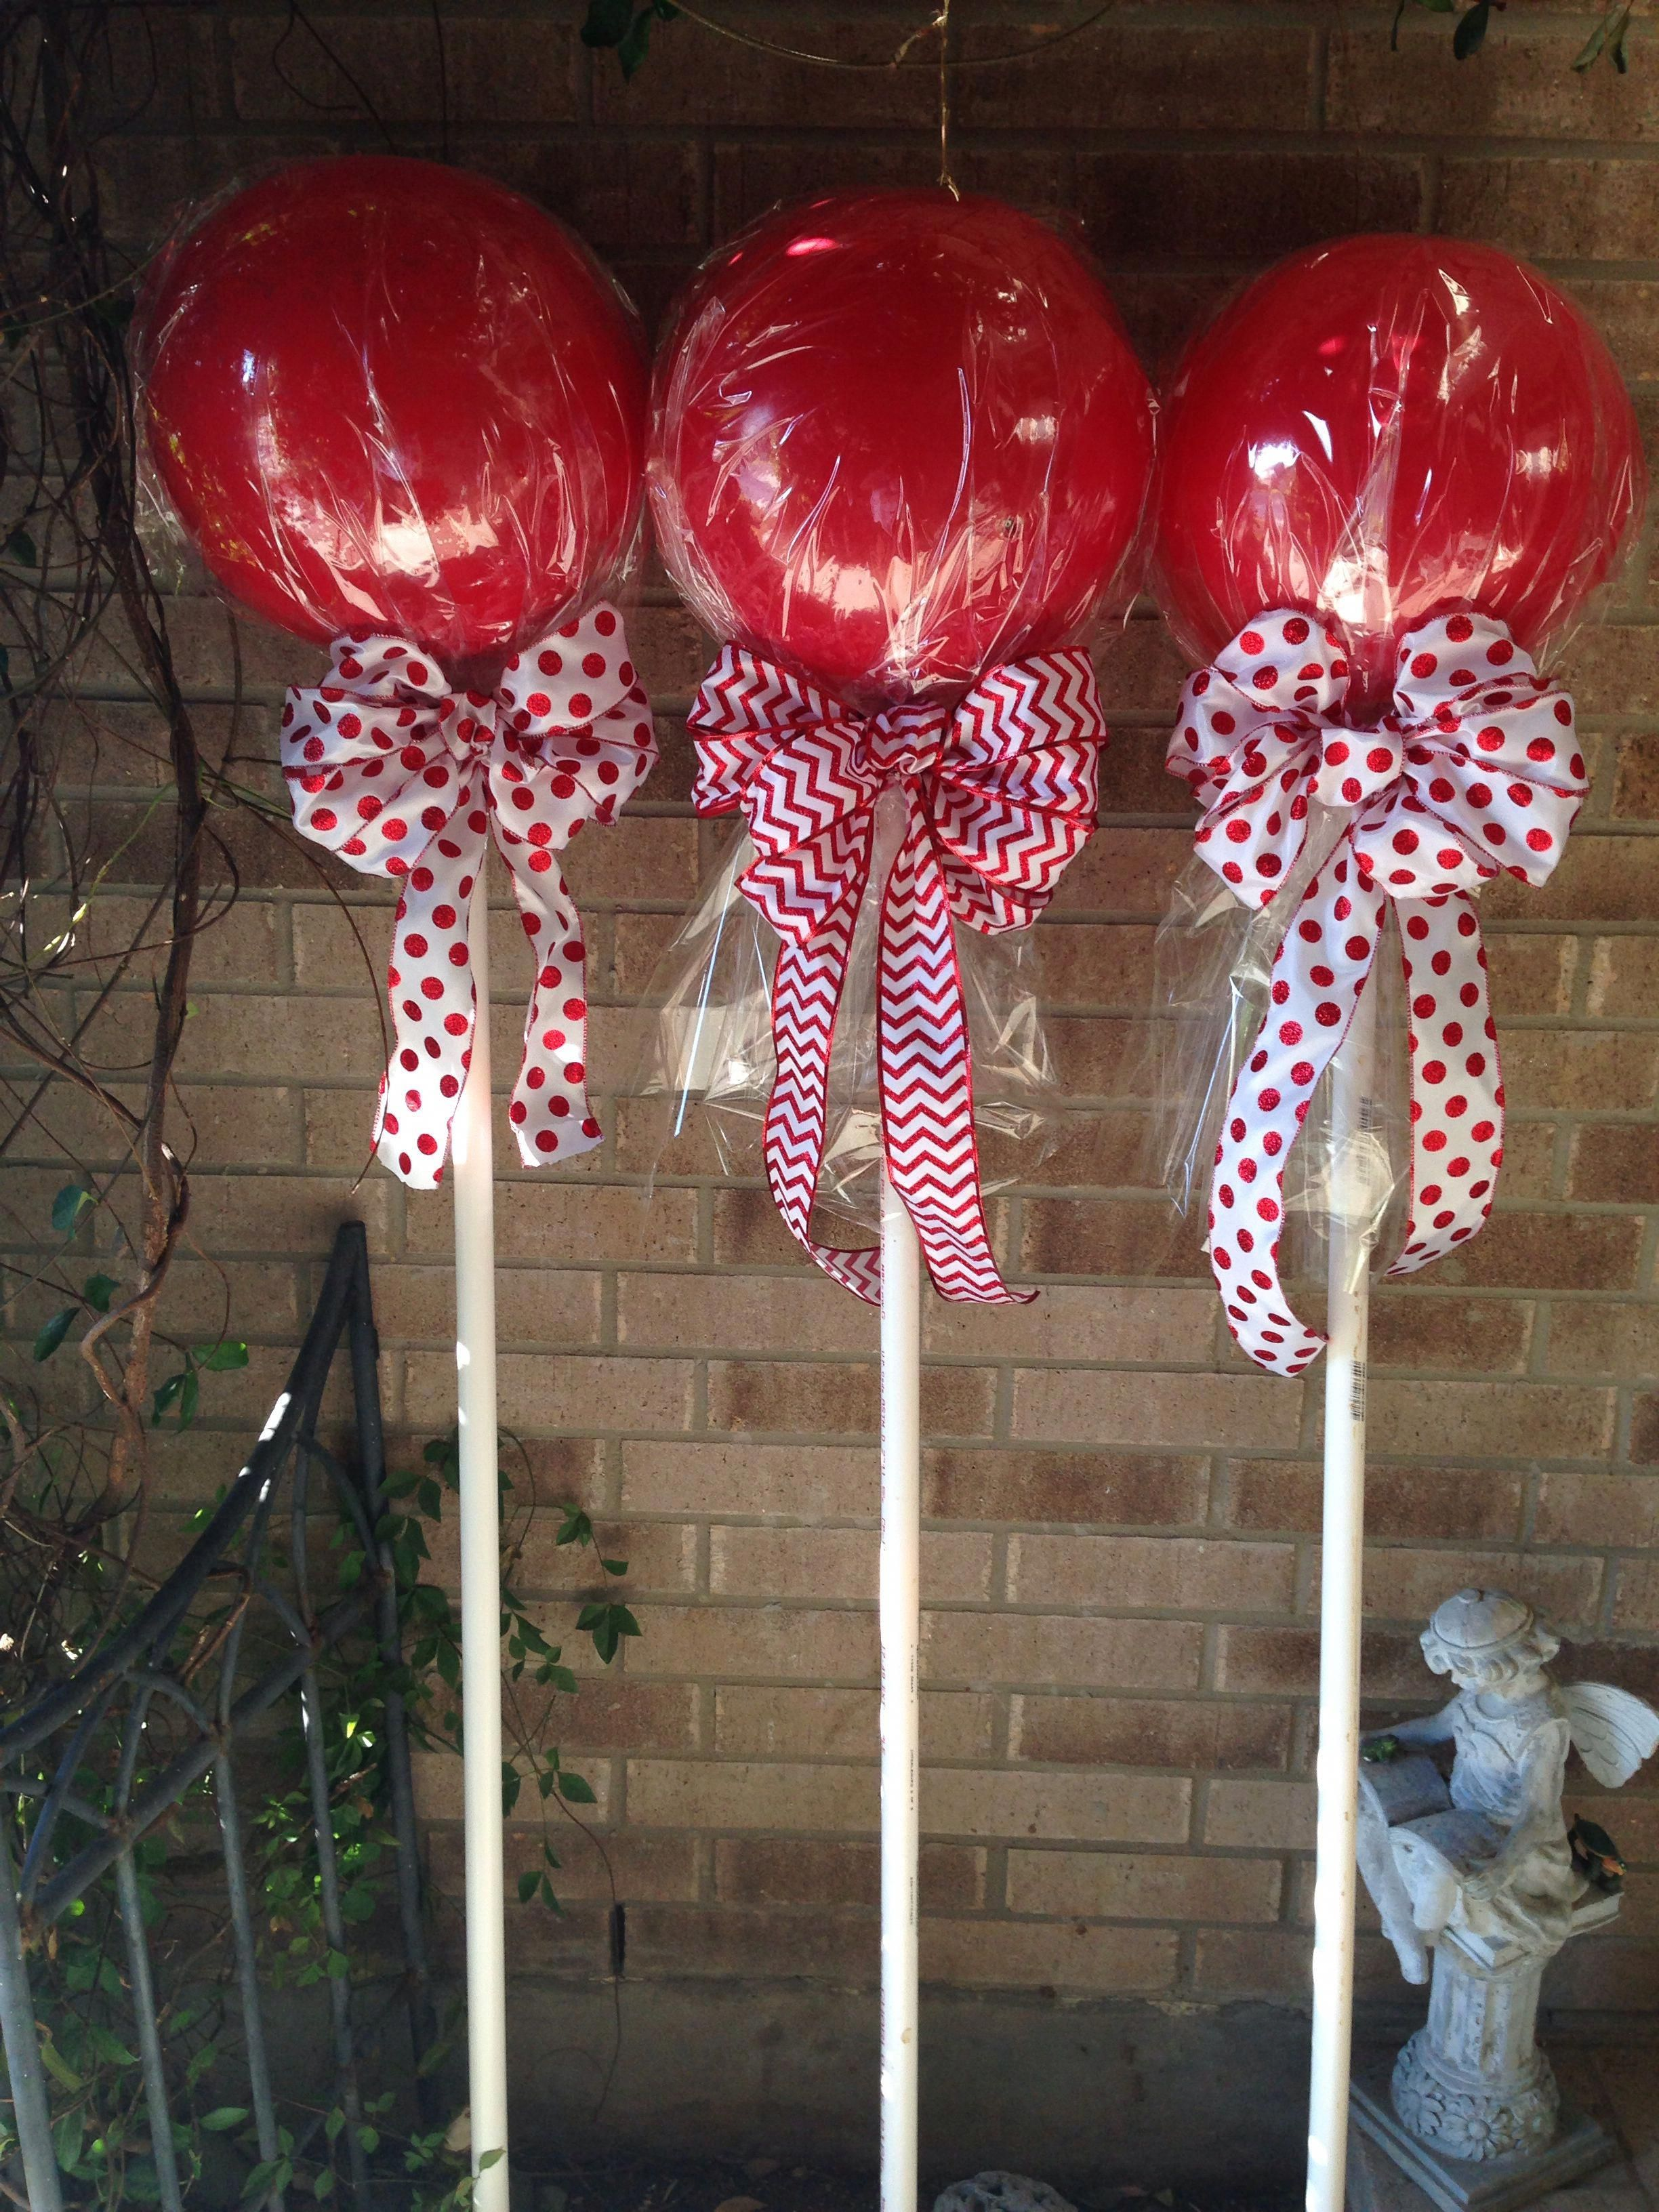 outside christmas decorations red rubber balls from walmart bows cellophane from hobby lobby